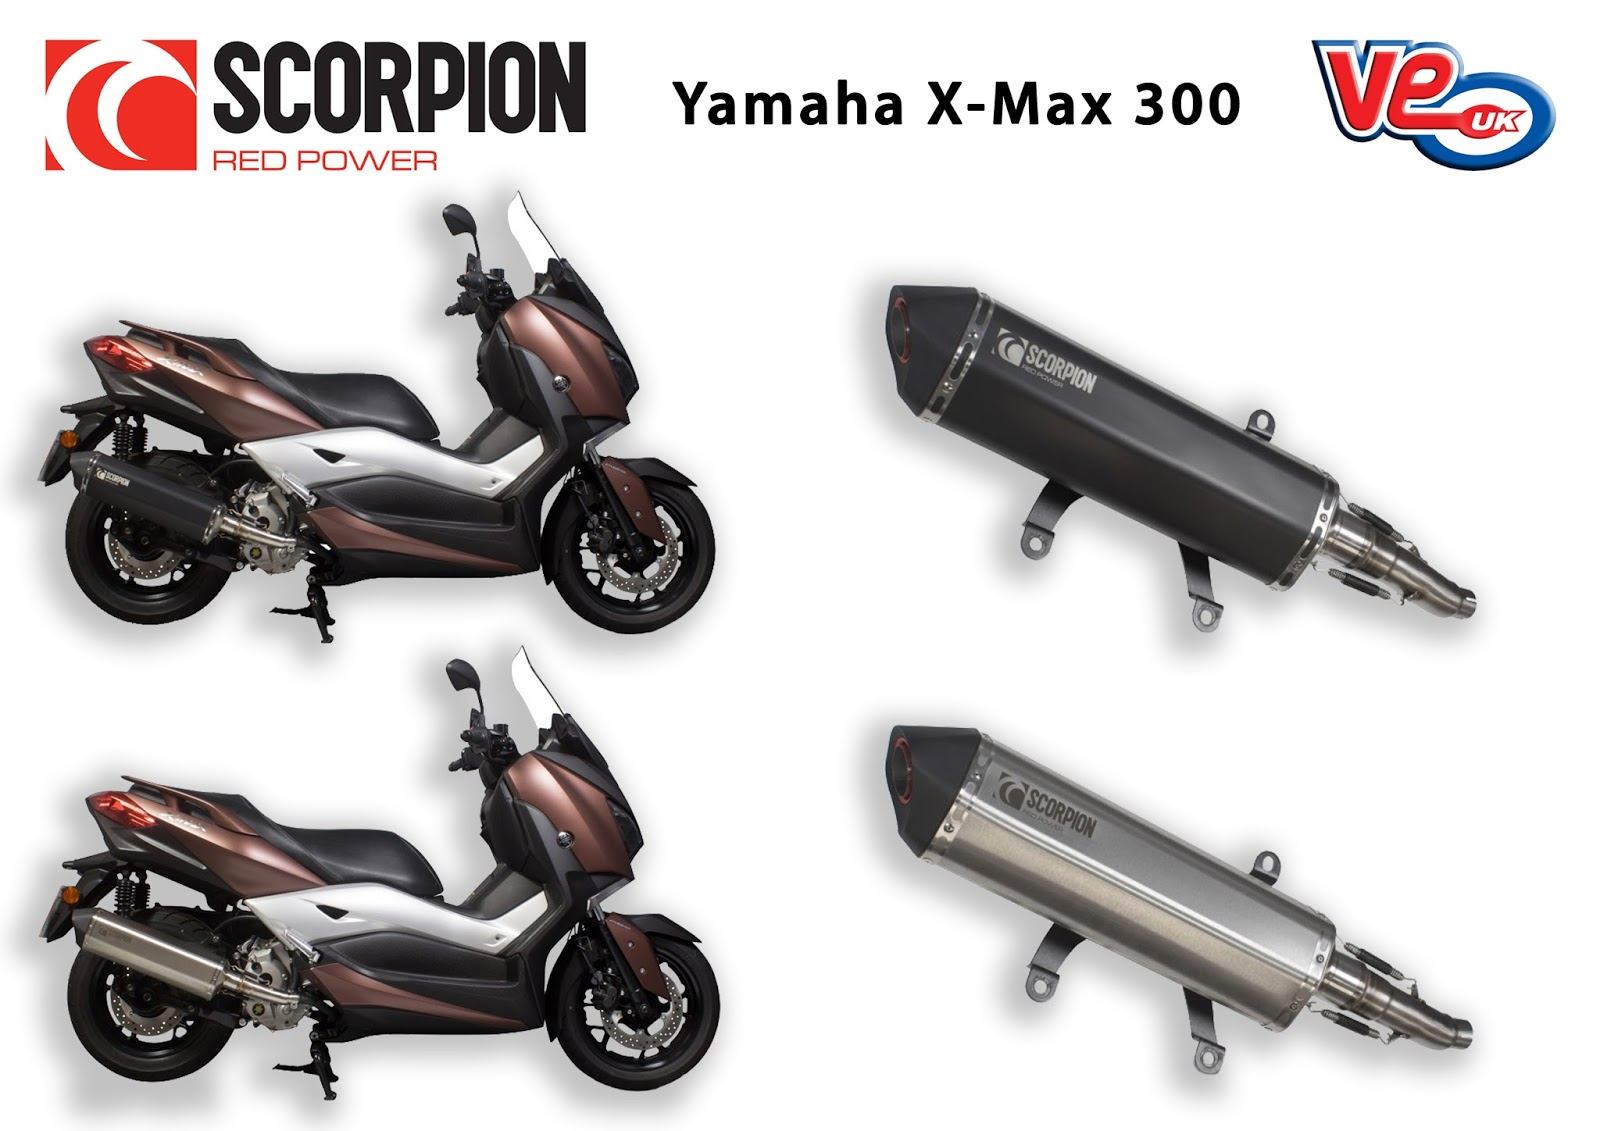 Yamaha X-Max 300 Scorpion Serket Exhausts